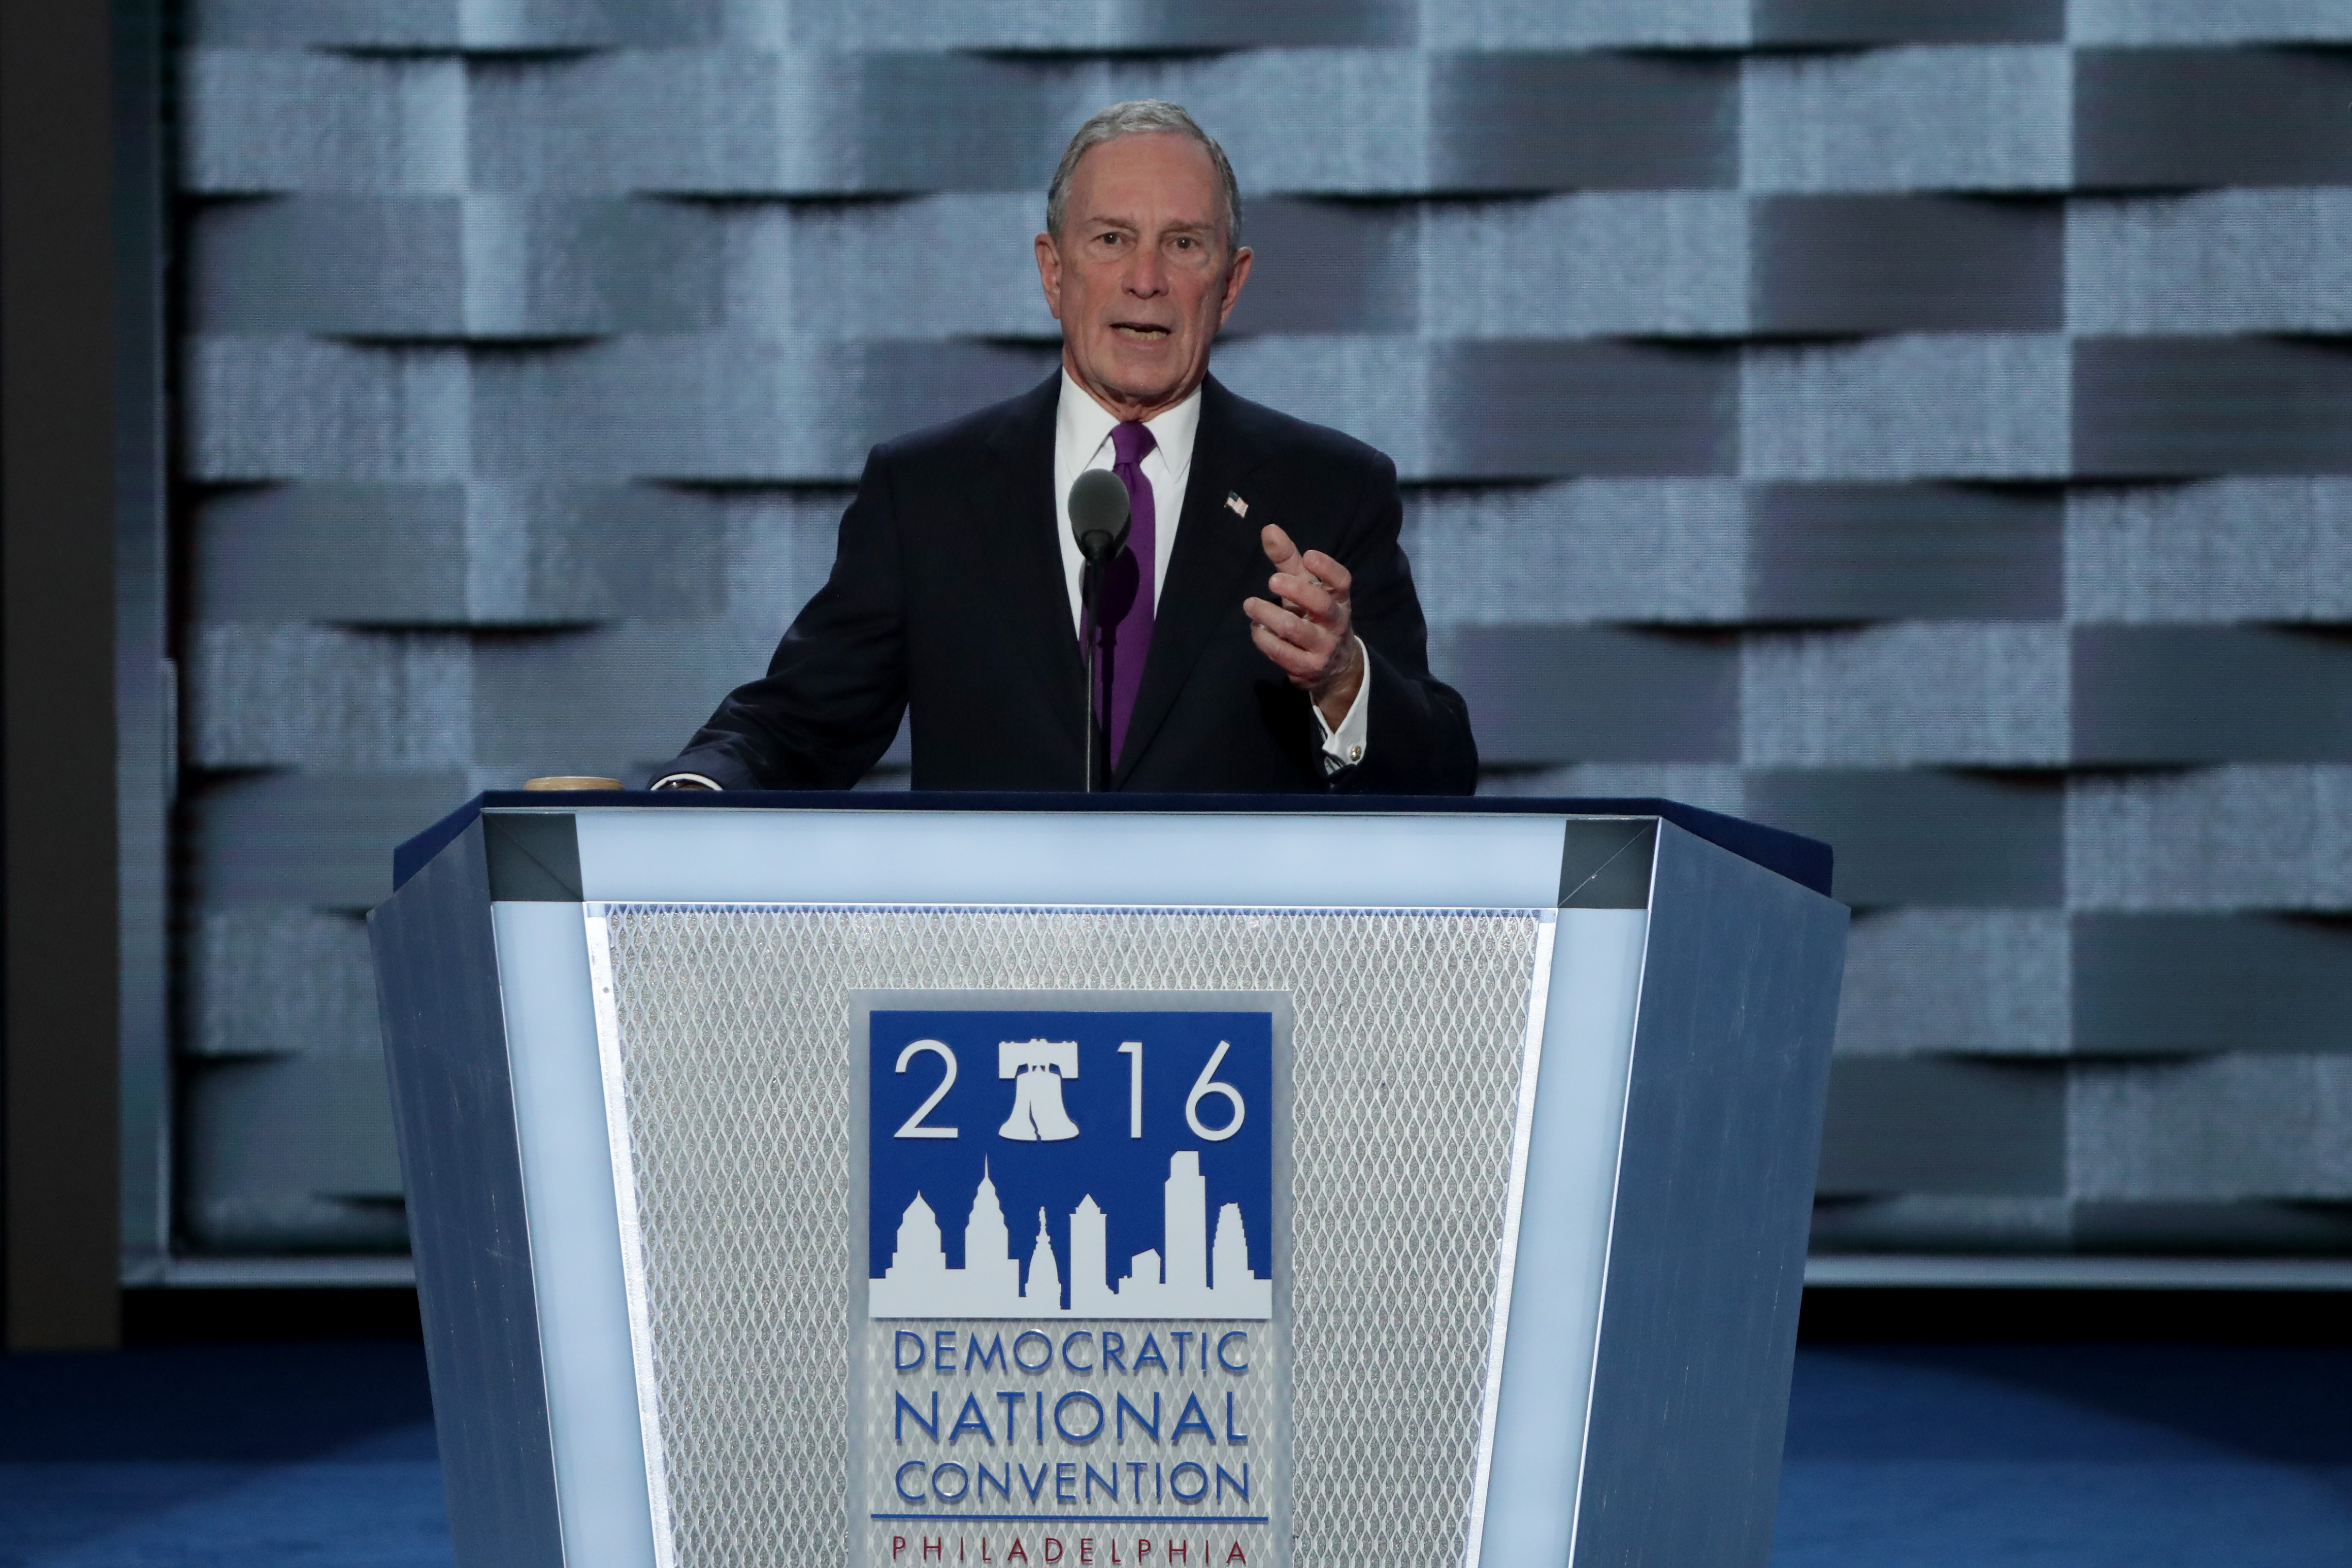 Michael Bloomberg at the Democratic convention.